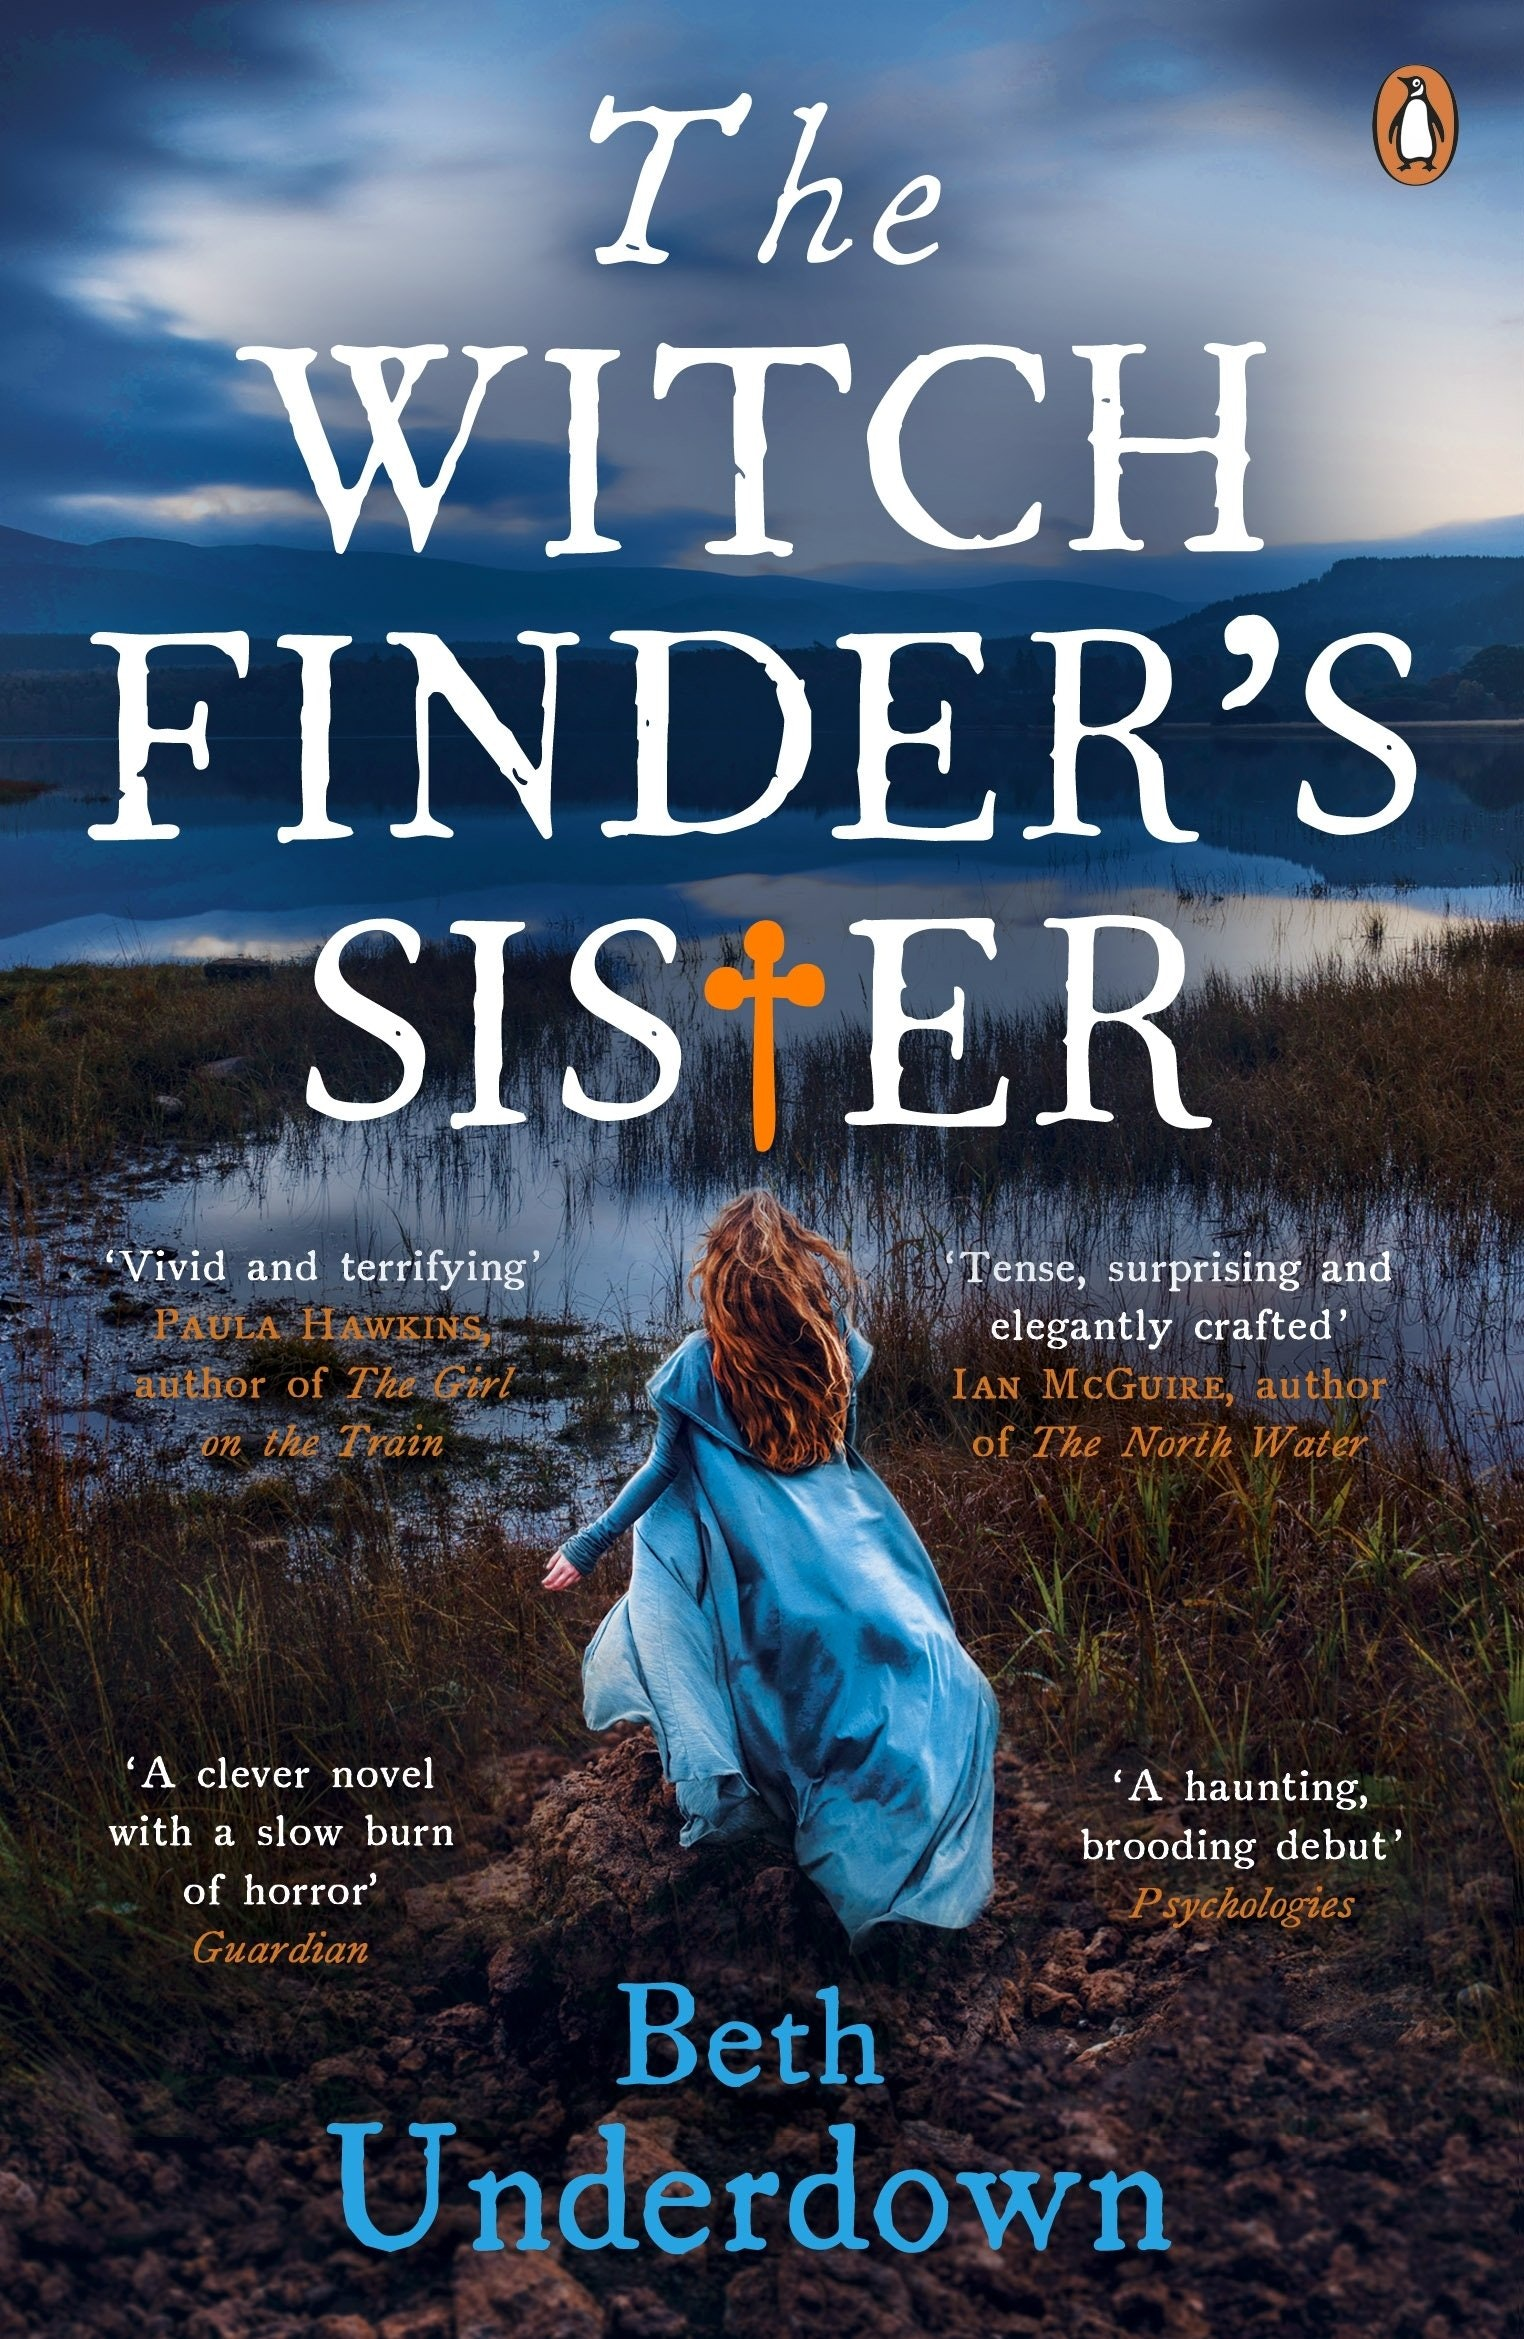 Books Like 'A Discovery Of Witches' By Deborah Harkness To